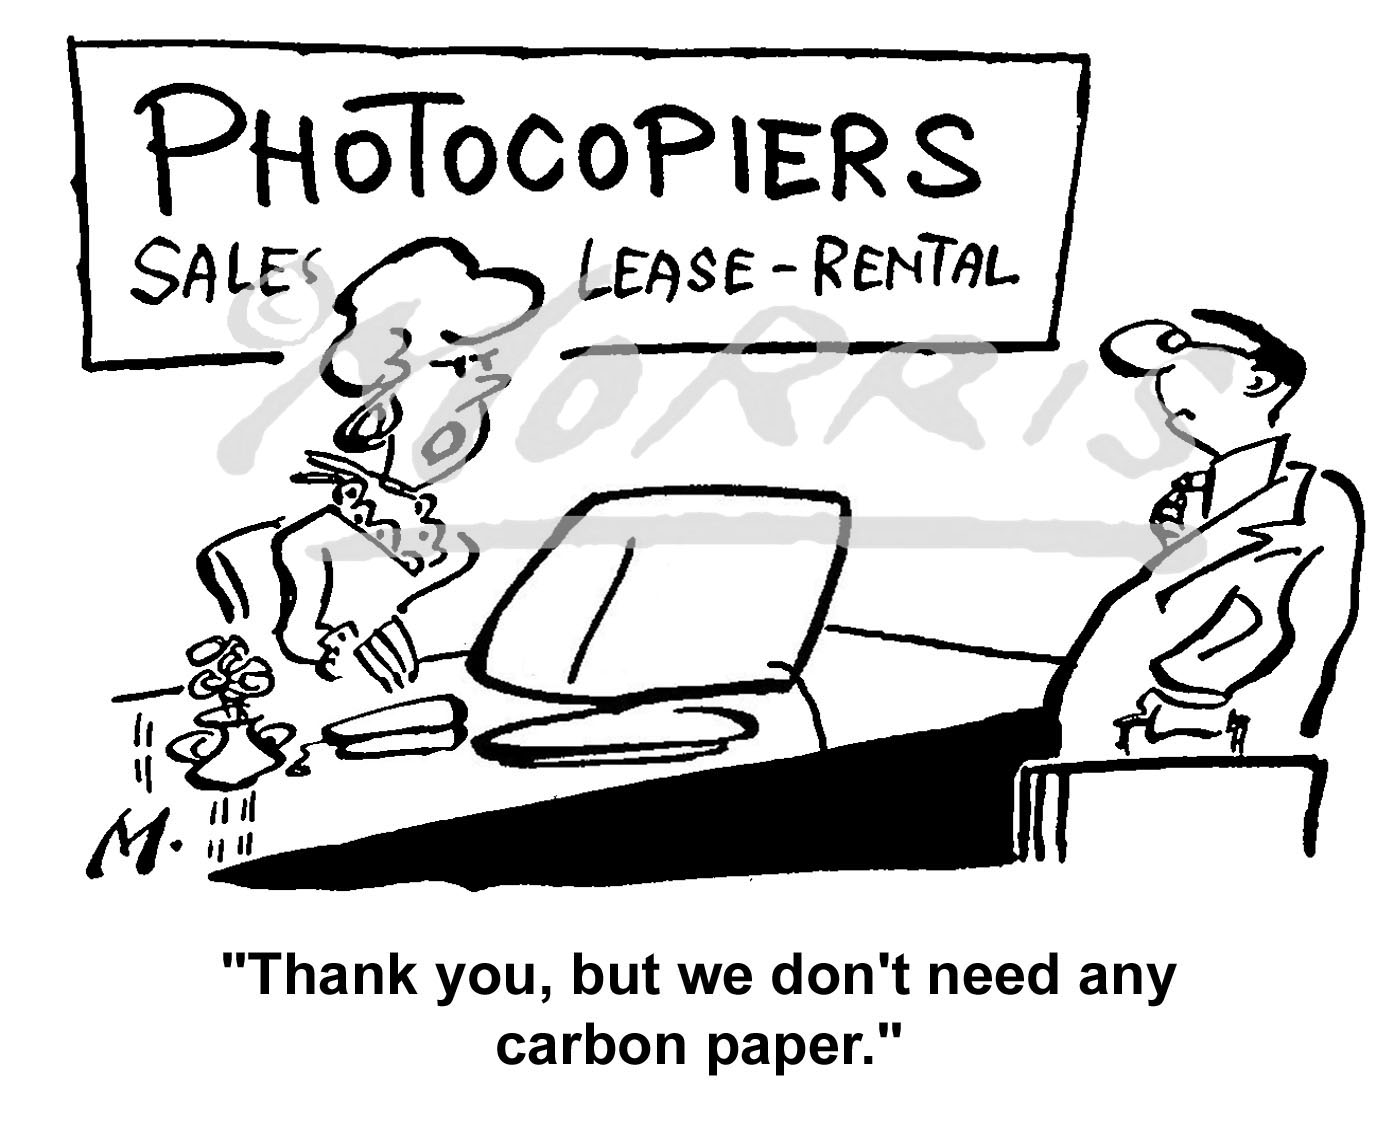 Photocopier salesperson cartoon Ref: 0601bw